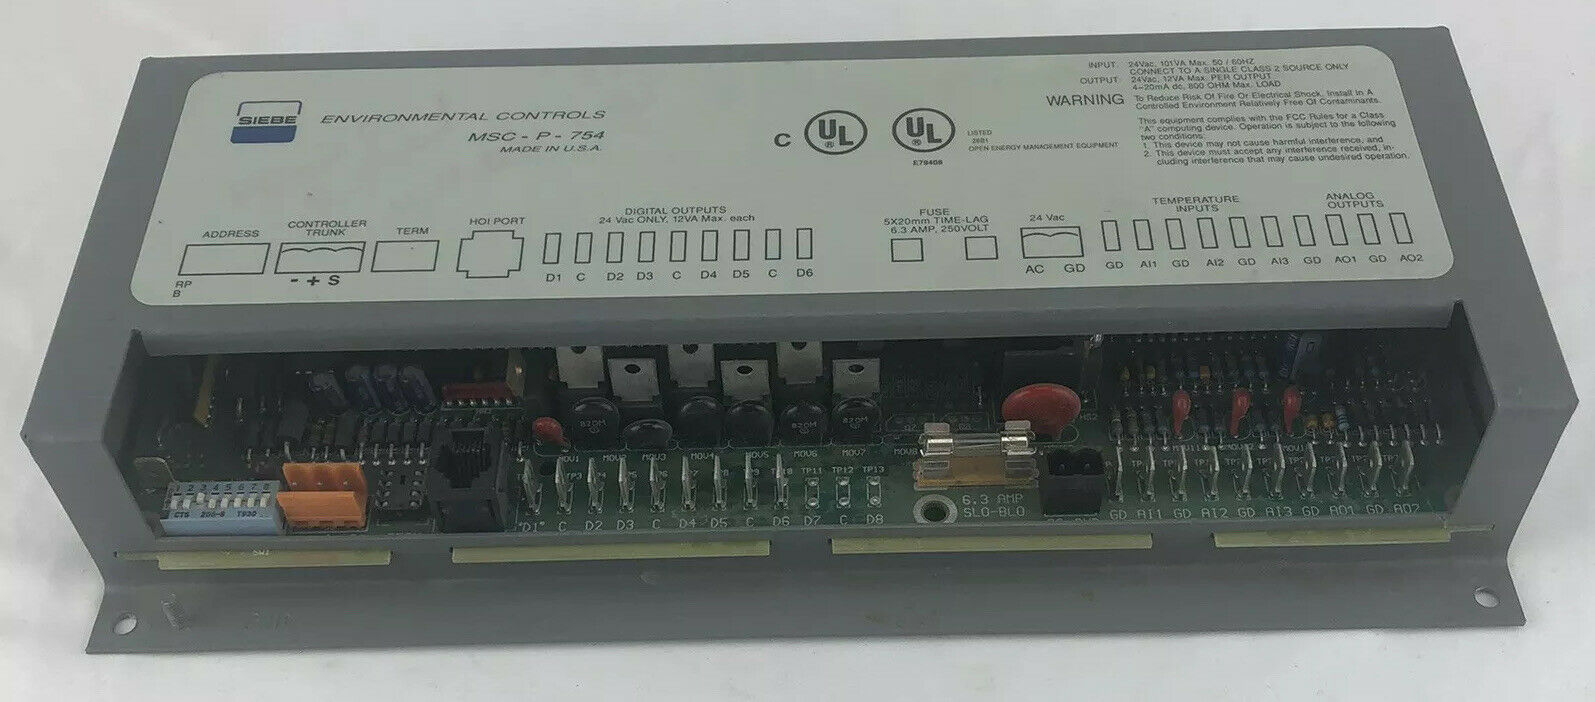 Siebe MSC-P-754 Open Energy Management Interface Controller